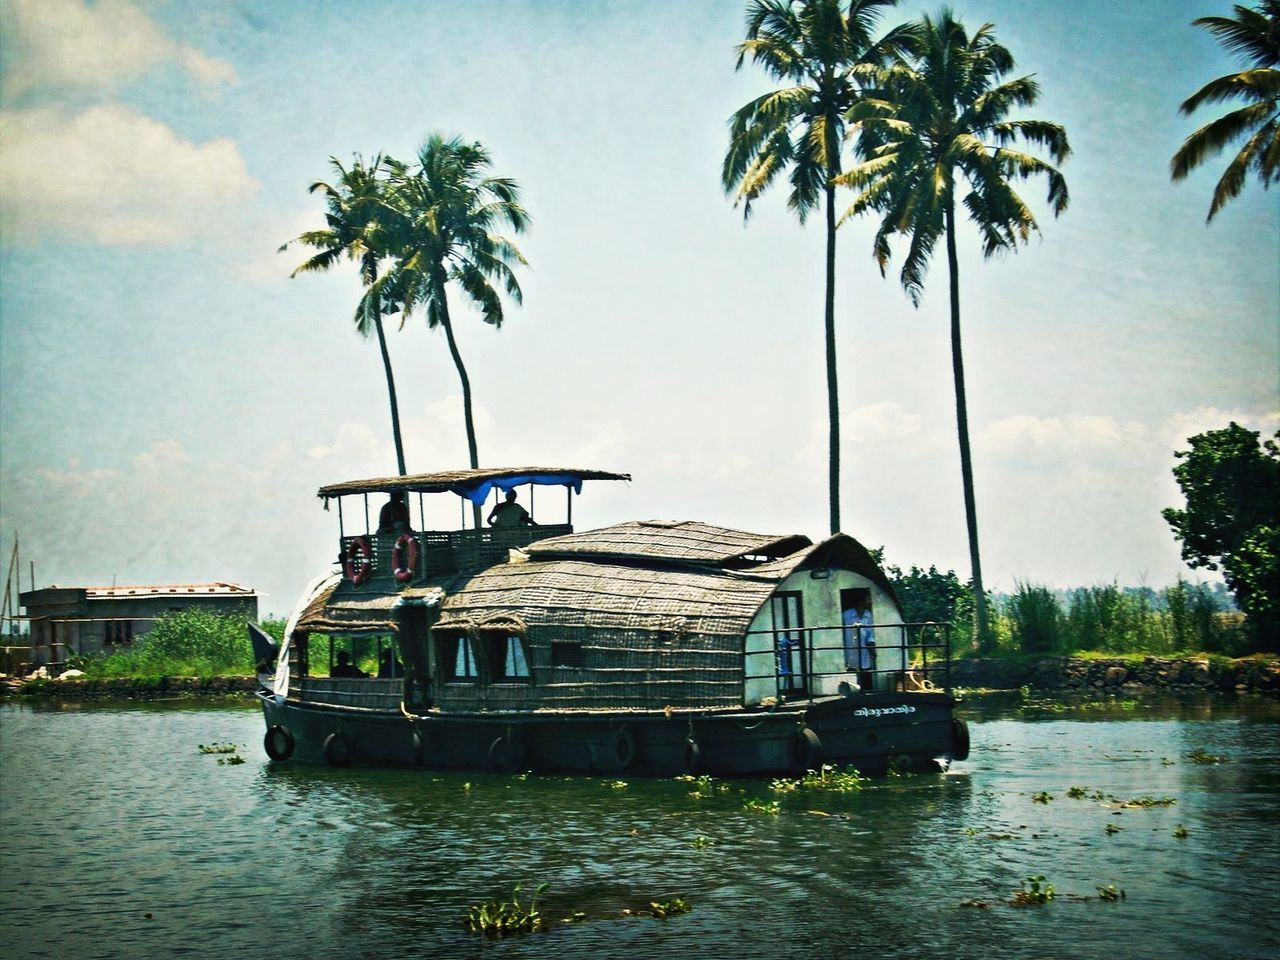 nautical vessel, transportation, tree, water, mode of transport, waterfront, boat, houseboat, day, palm tree, lake, moored, nature, outdoors, no people, sky, beauty in nature, architecture